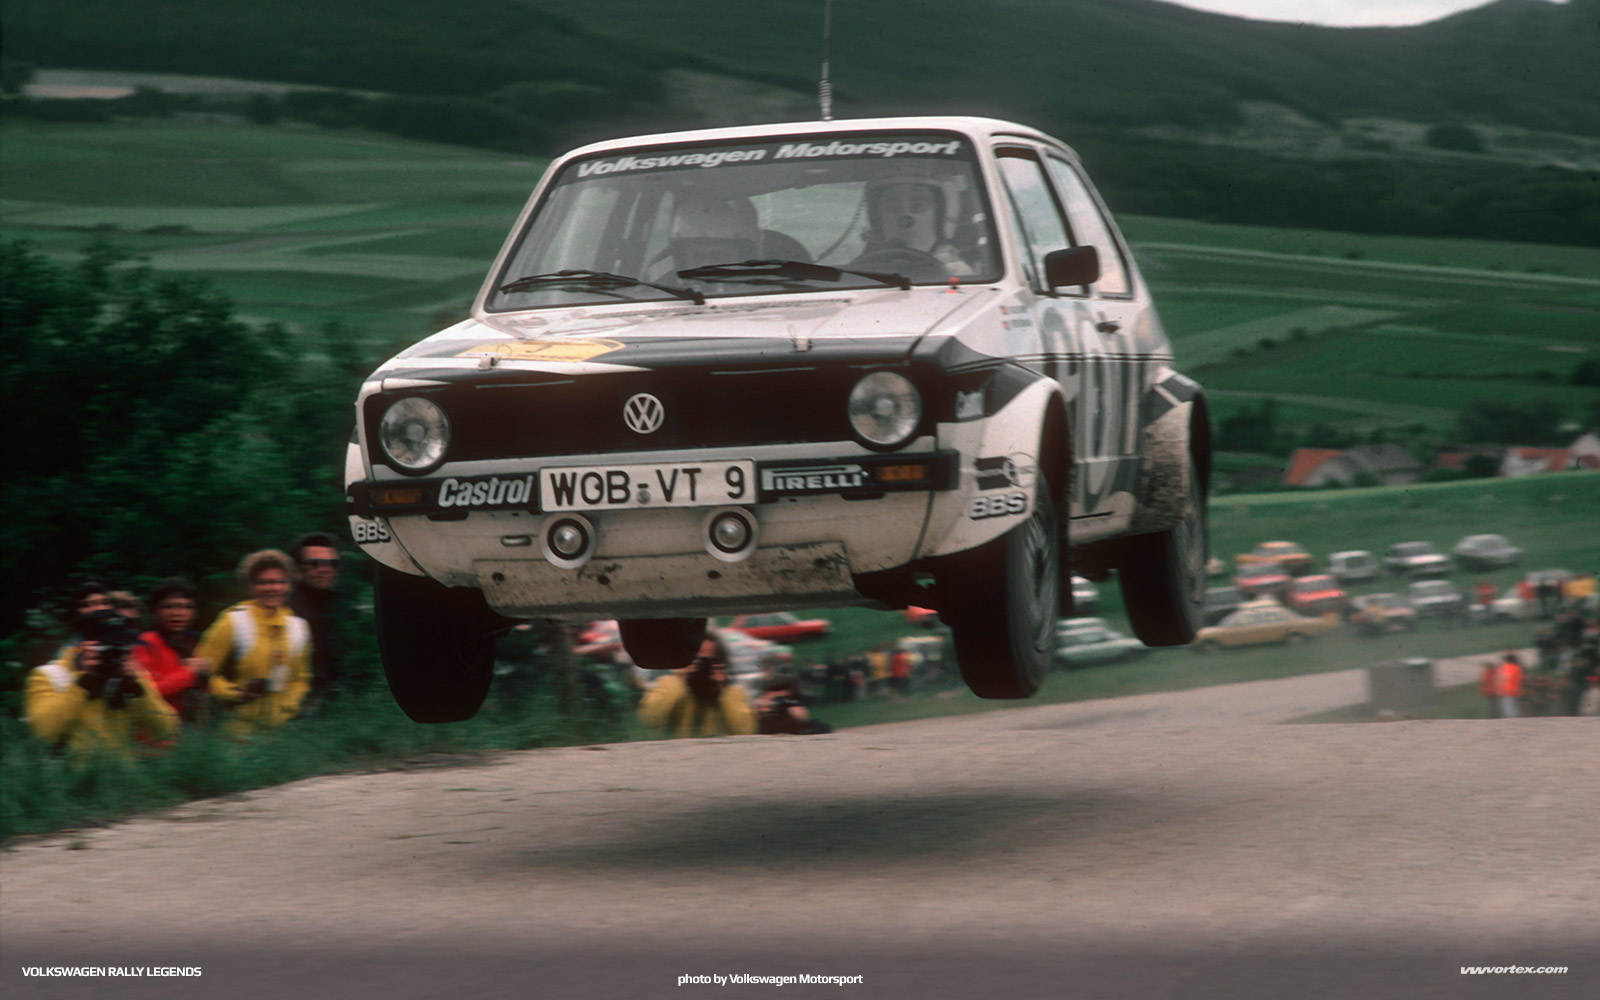 volkswagen-rally-legends-403